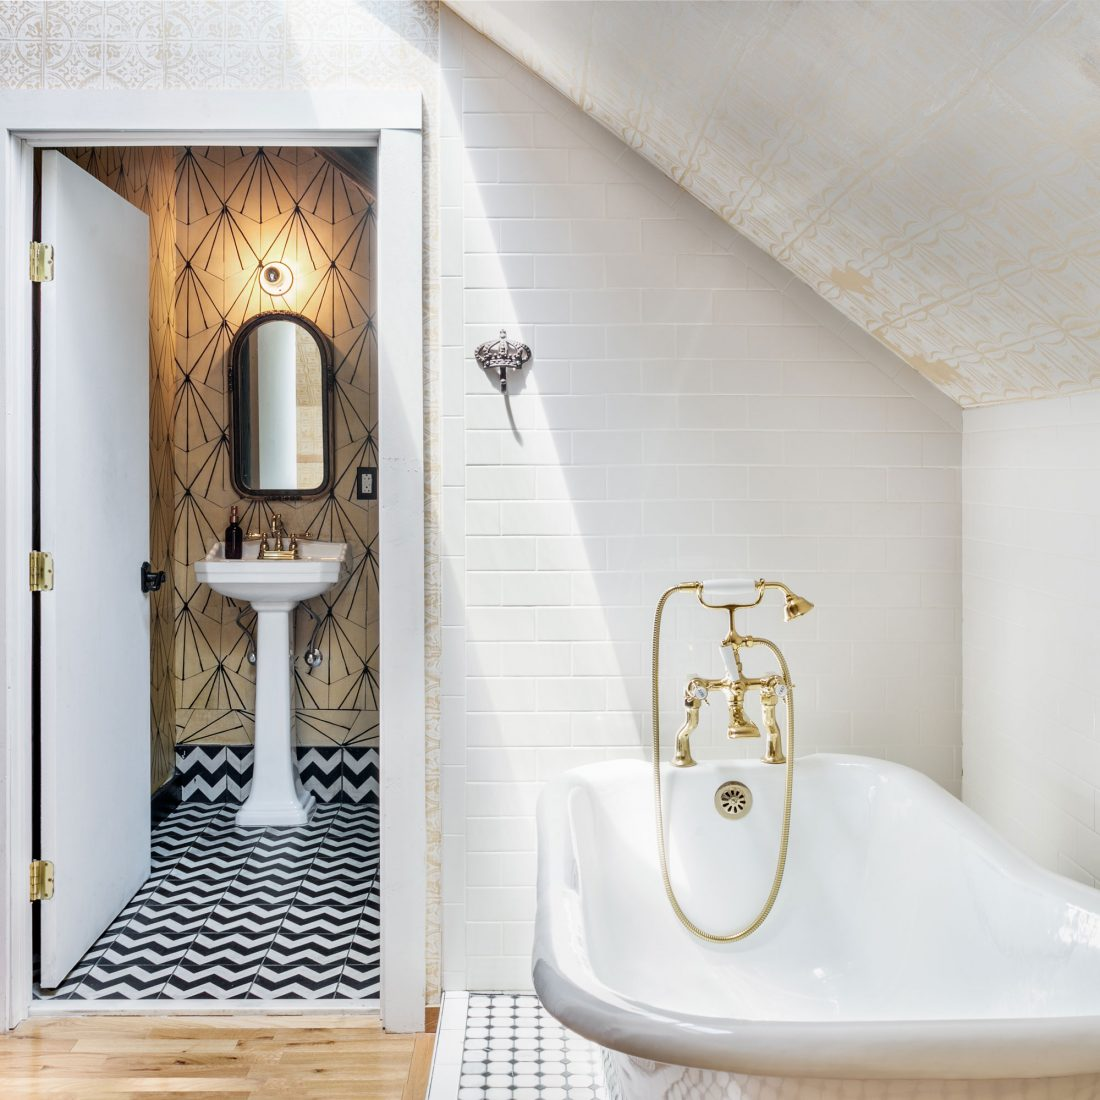 Sleek white bathtub under the A-frame of The Urban Cowboy Nashville. Beyond the bathroom, a door leads to a tiled wash room.